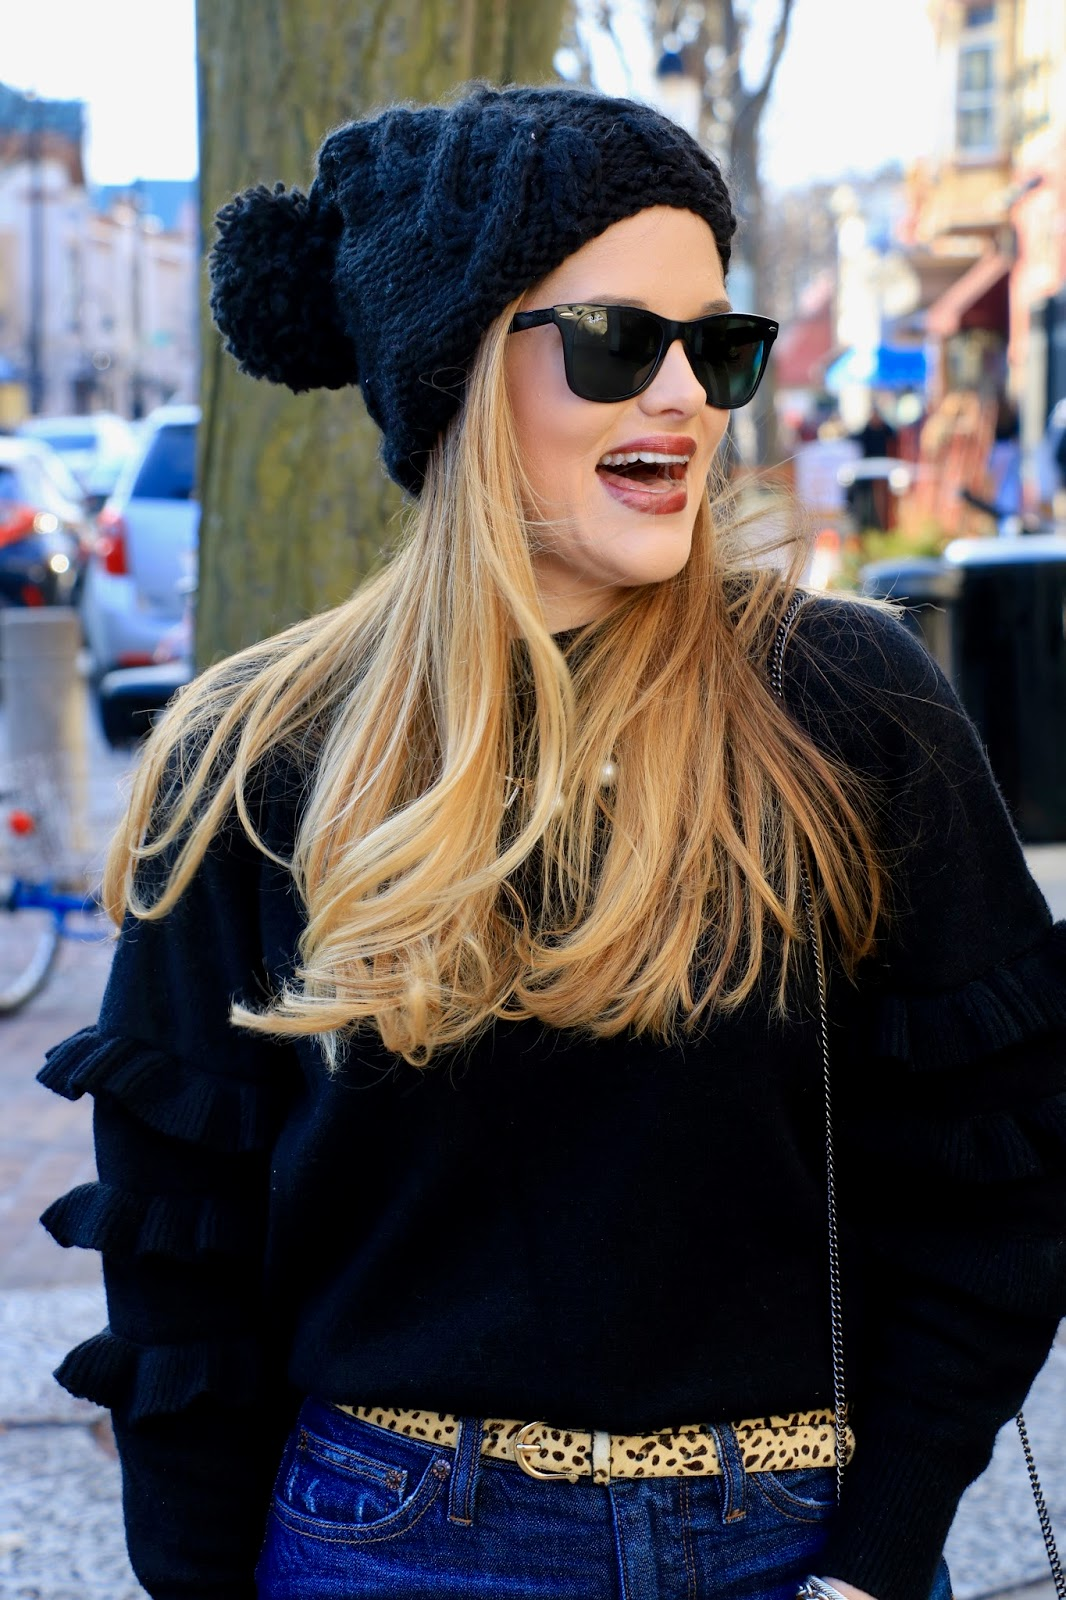 Nyc fashion blogger Kathleen Harper wearing a black pom beanie